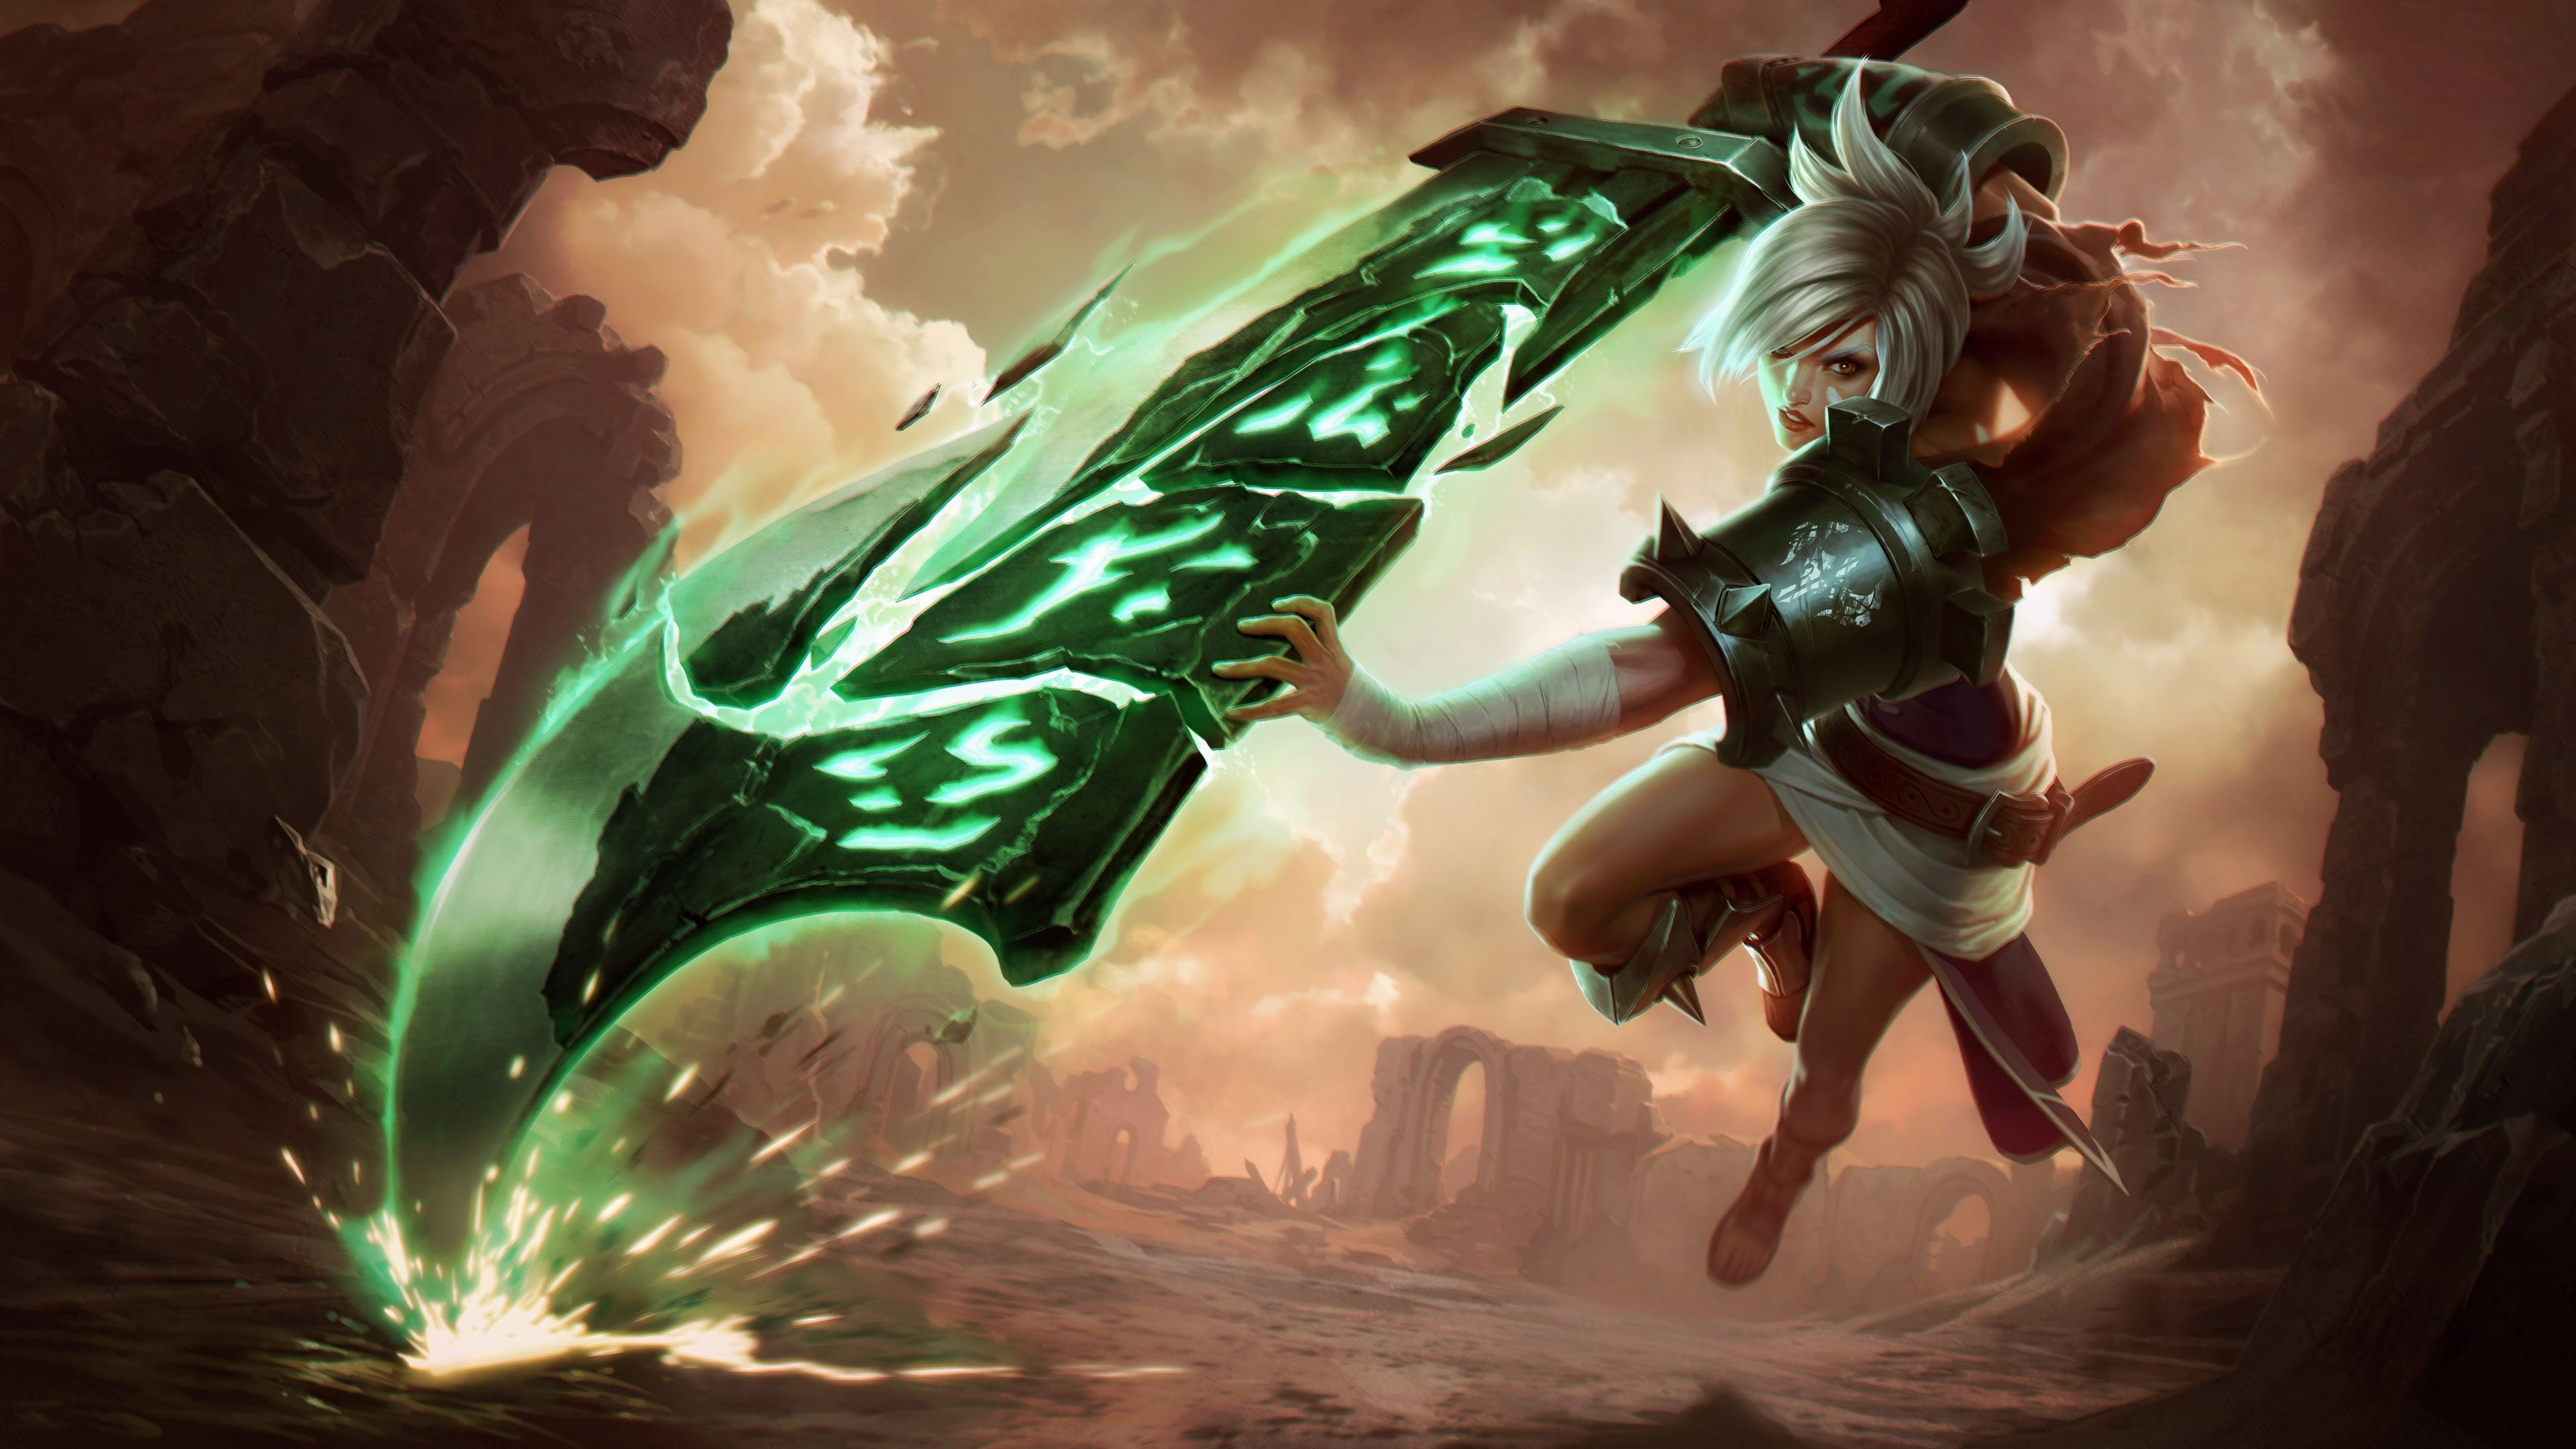 Wallpaper 4k Riven League Of Legends 4k 4k Wallpapers Artist